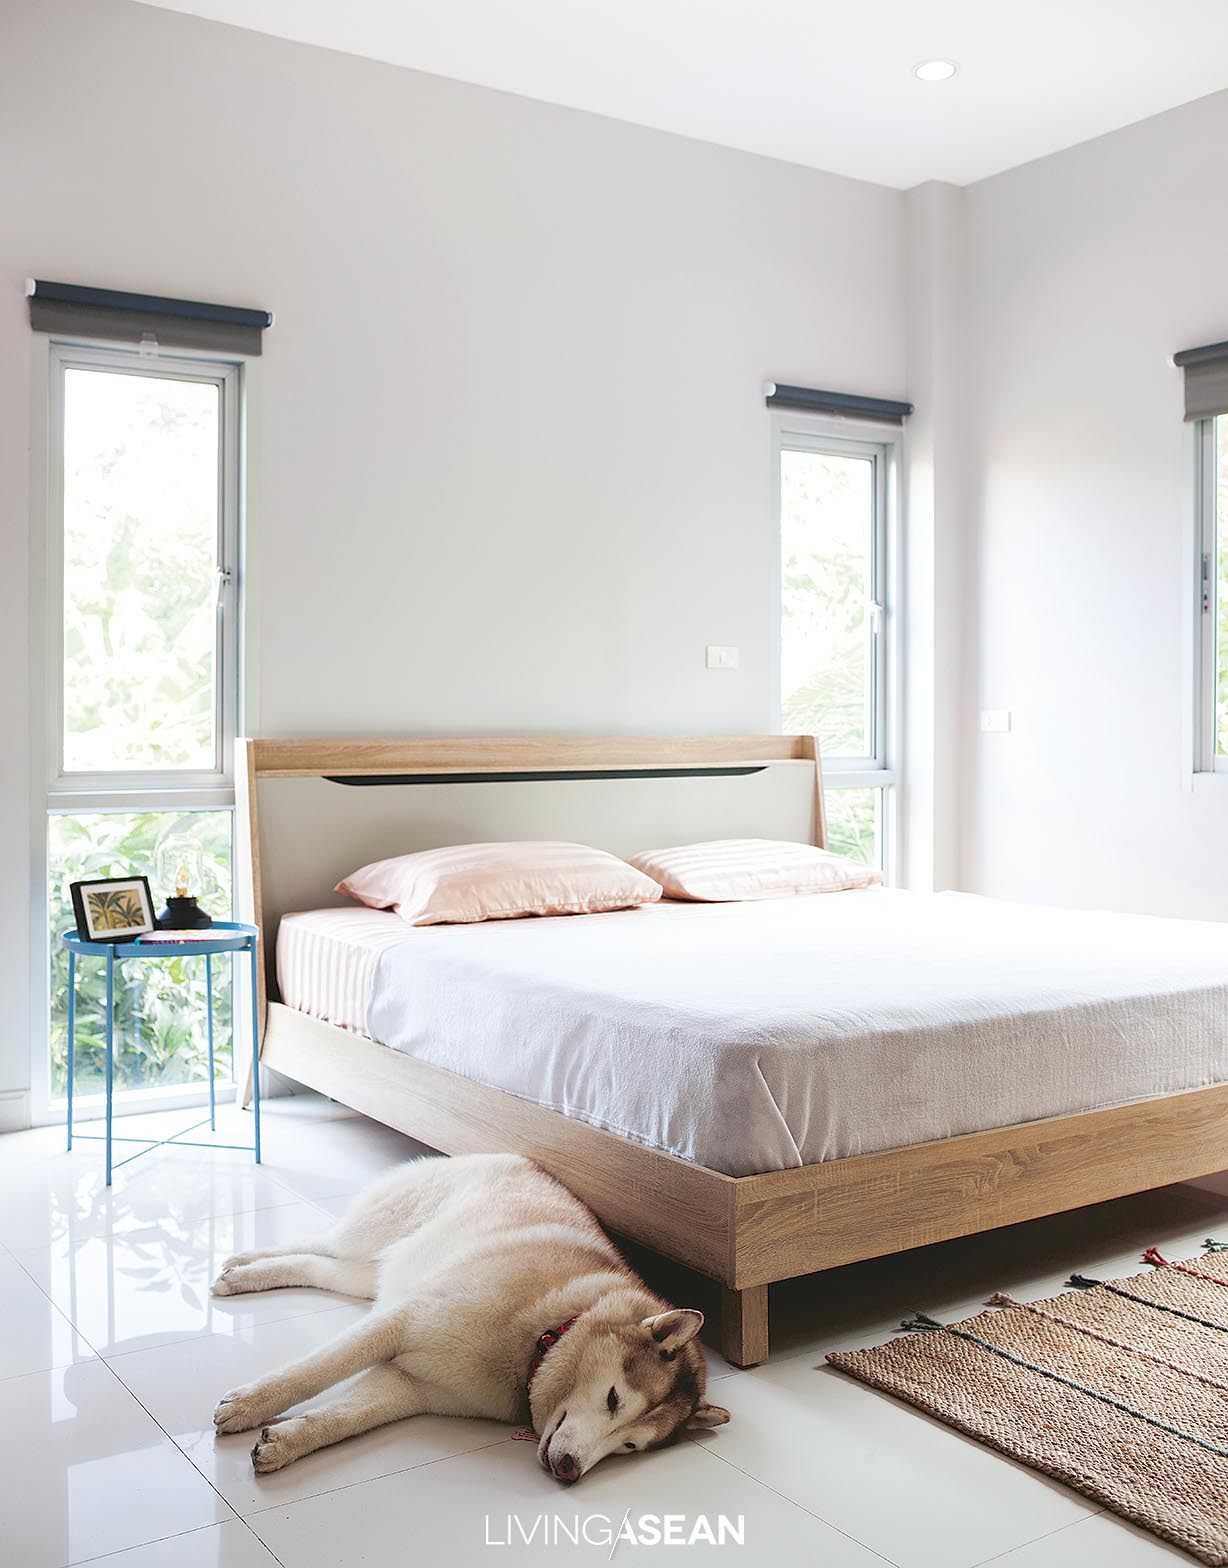 The bedroom is furnished with just the bare necessities consisting of a bed, sideboard, and desk. Open plan design makes perfect sense in a situation where dogs are allowed to sleep in the bedroom.